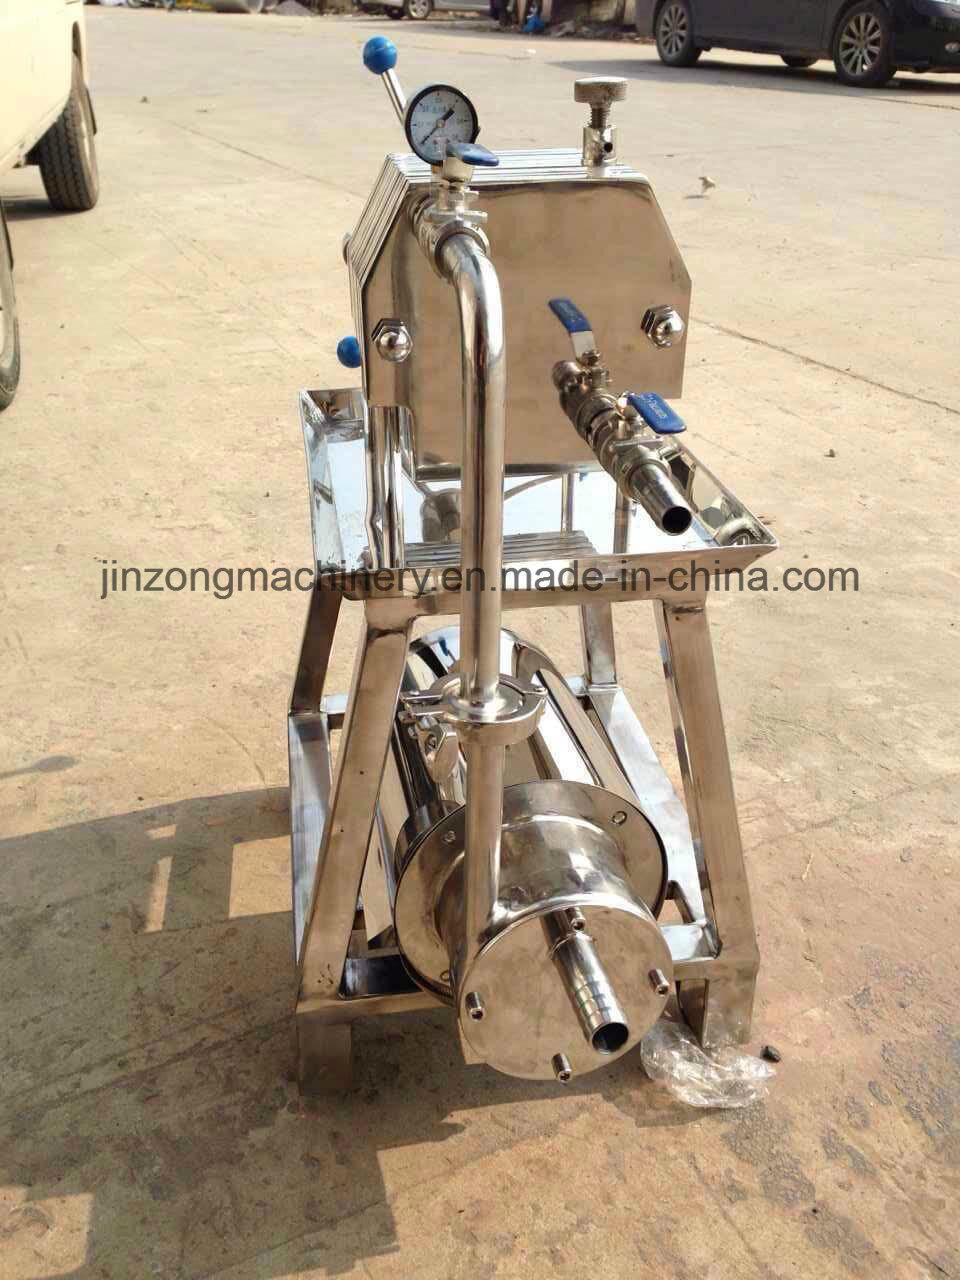 China Stainless Steel Plate Frame Filter